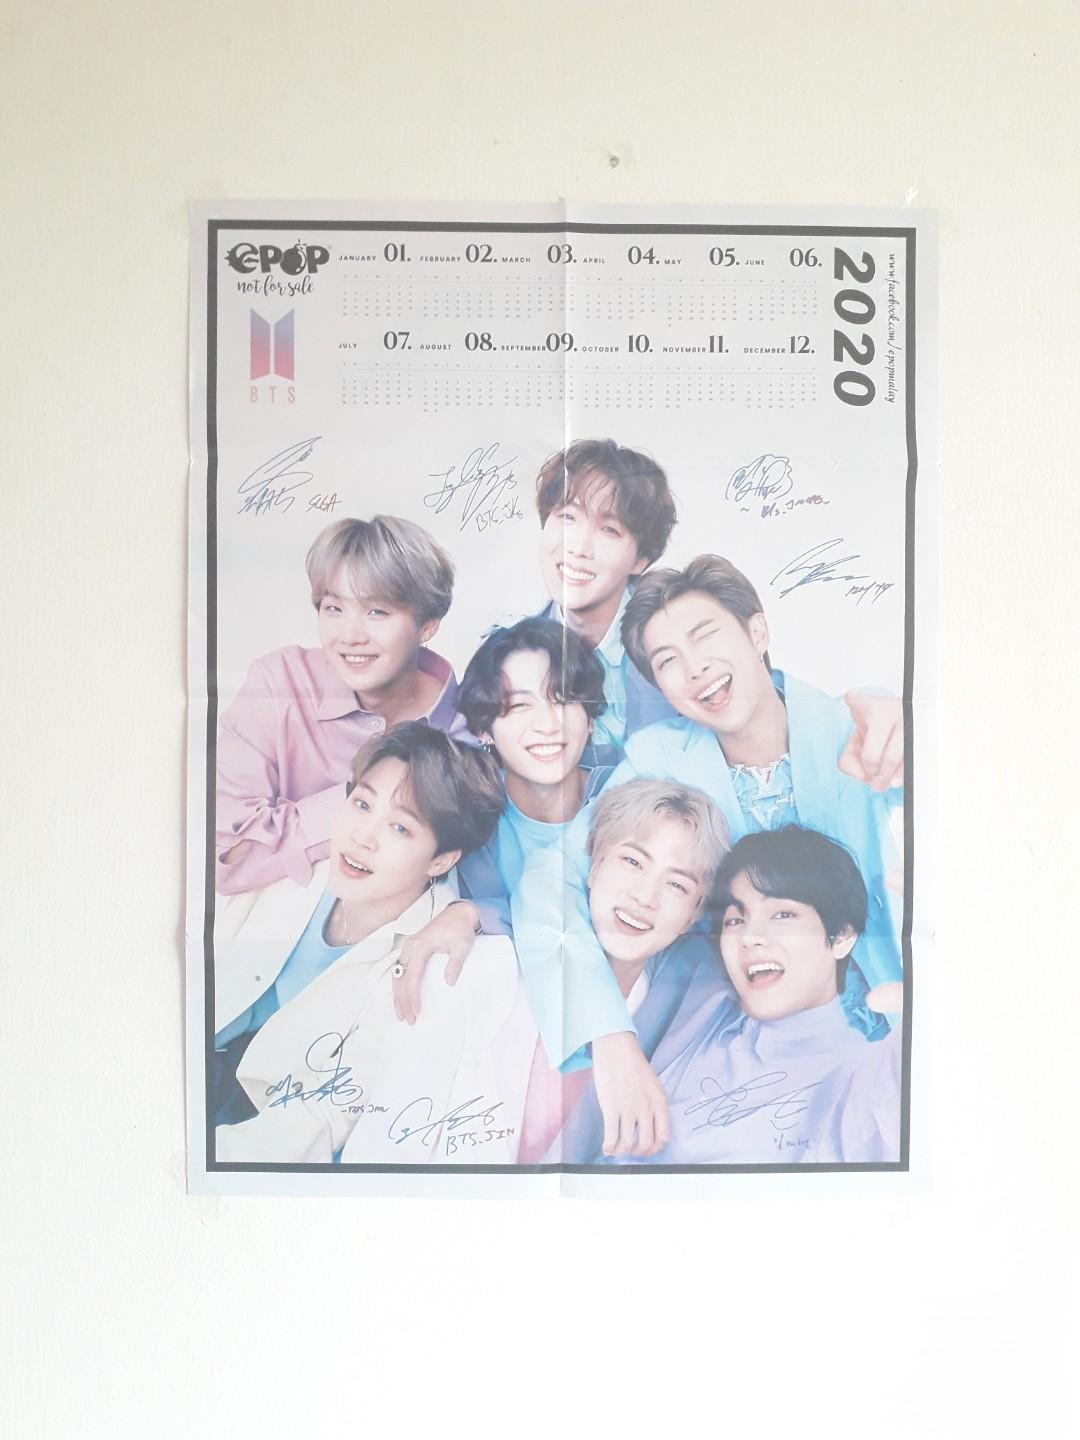 'BTS' Poster + Year 2020 Calendar (2 poster available)